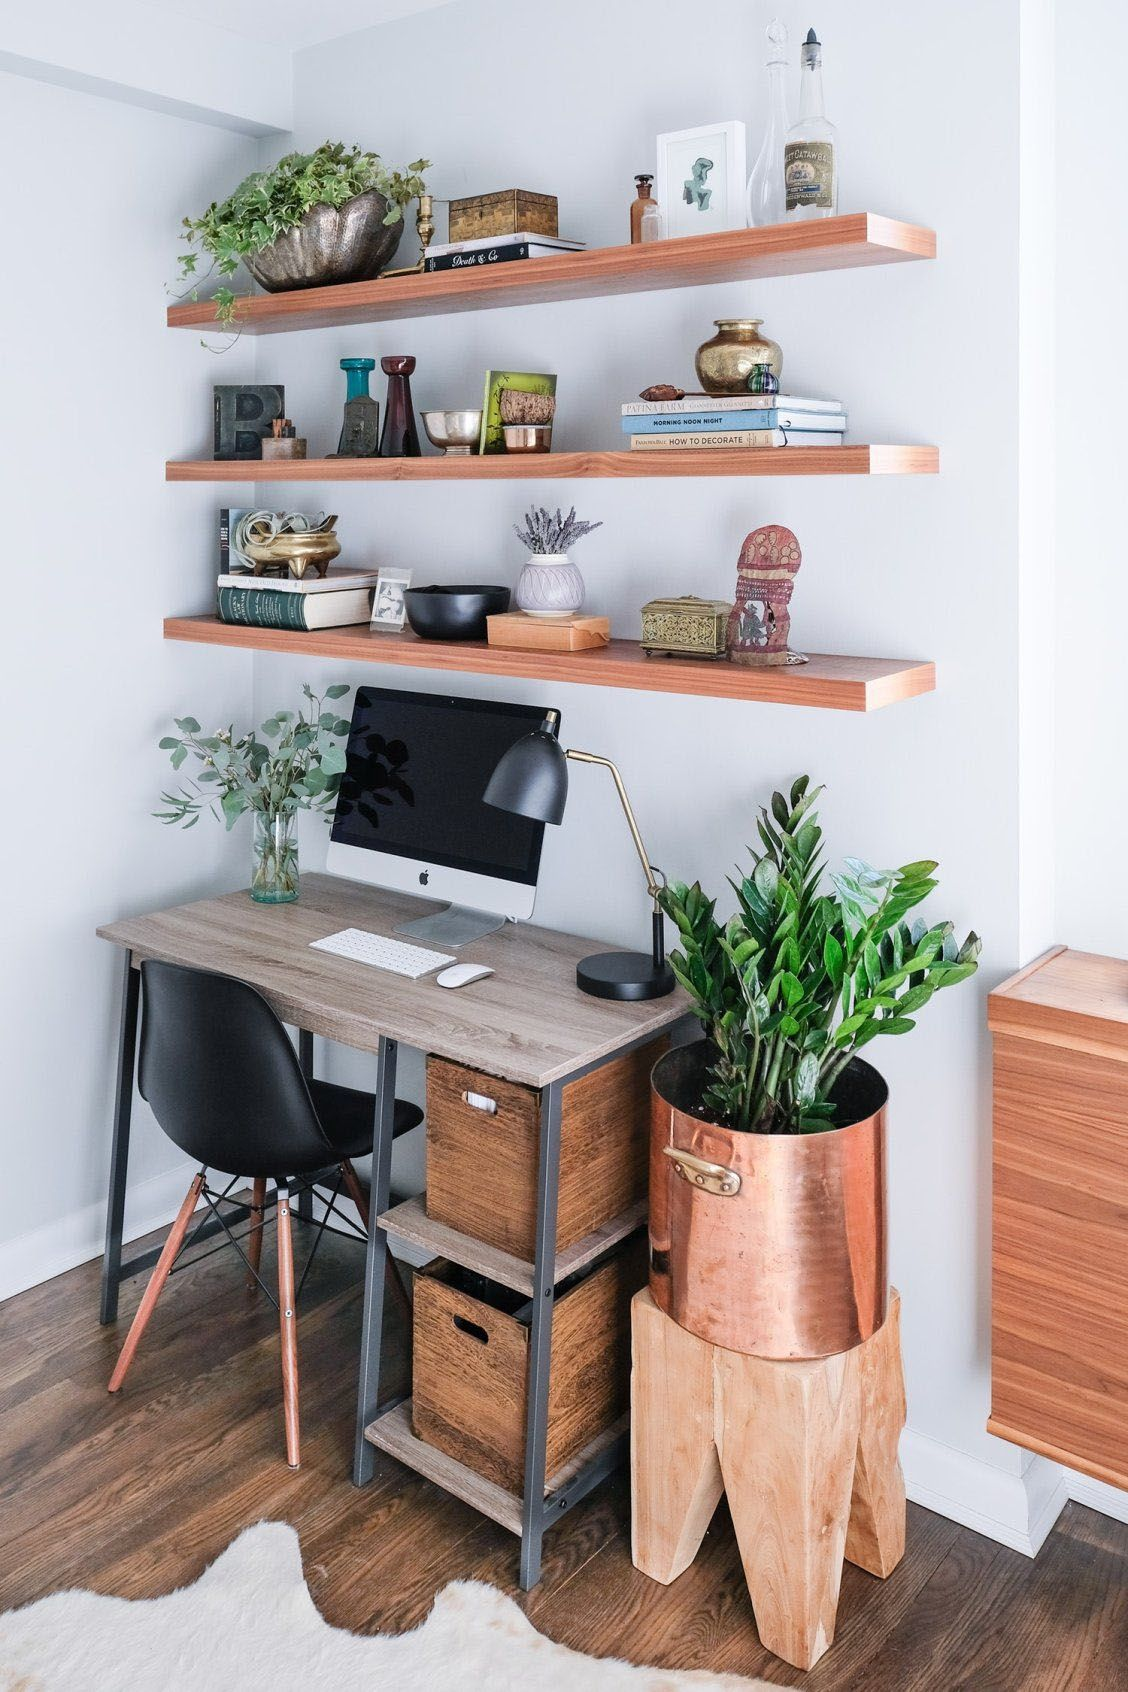 Cool Home Office Ideas Youtube Exclusive On Interioropedia Home Decor Tiny Apartment Decorating Home Office Setup Home Office Decor